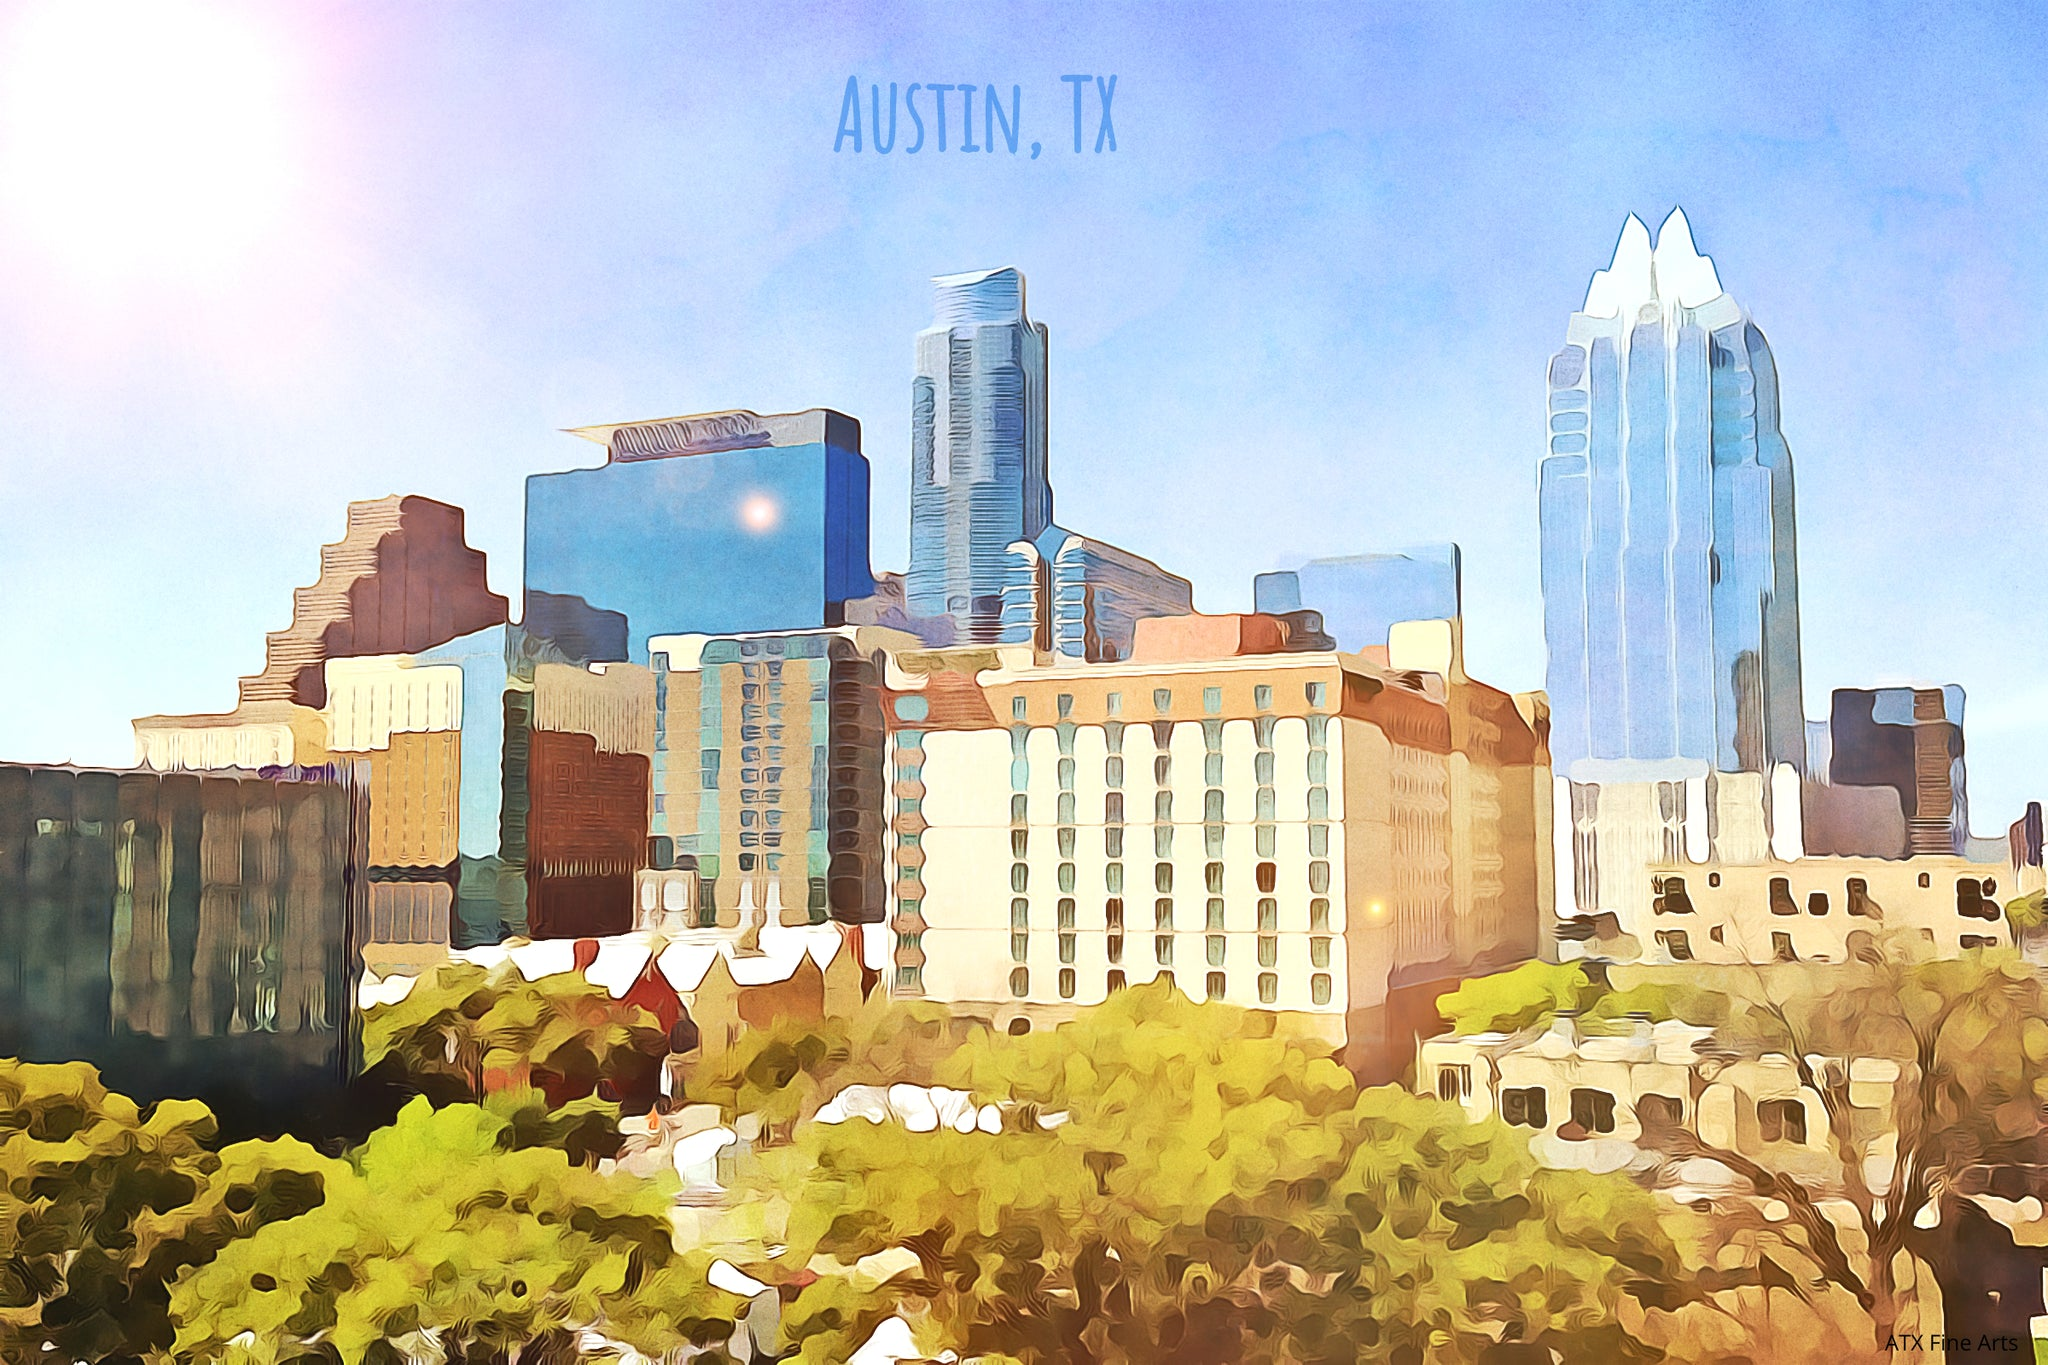 austin downtown artwork-austin downtown skyline-Austin skyline painting-austin skyline print-Austin skyline wall art-Austin skyline art-downtown Austin painting-Austin art gallery-art for sale Austin-Austin artists paintings-where to buy art in Austin-art